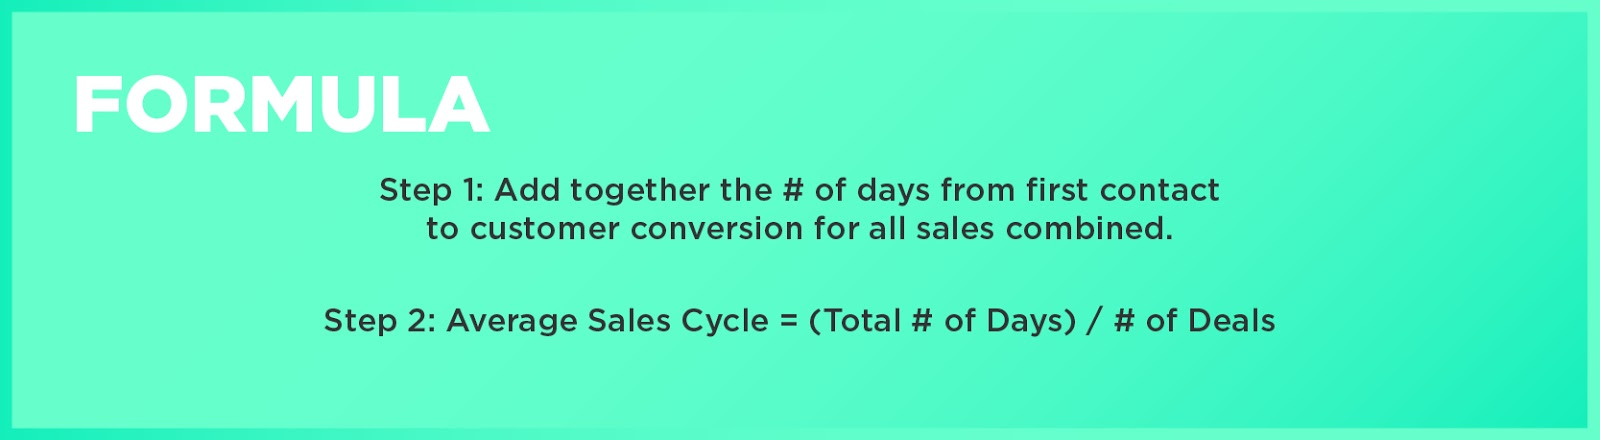 Formula: Step 1: Add together the # of days from first contact to customer conversion for all sales combined. Step 2: Average Sales Cycle = (Total # of Days) / # of Deals